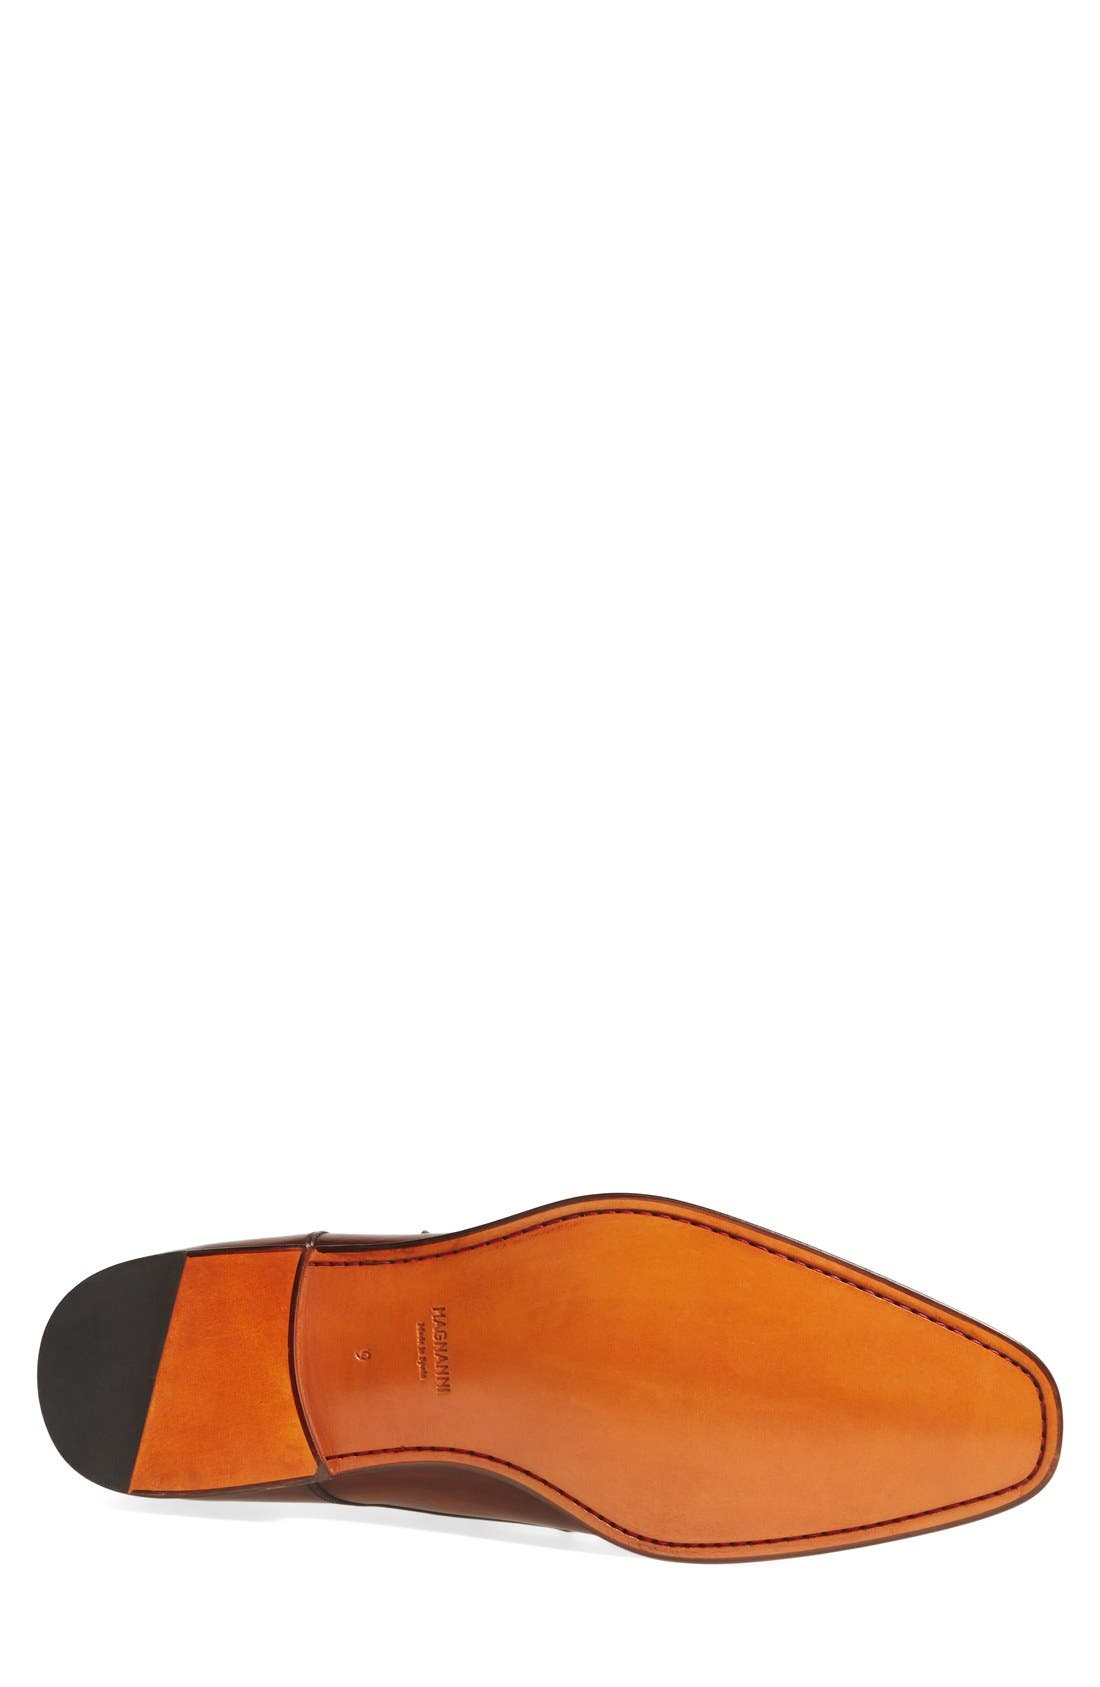 Marco Monk Strap Loafer,                             Alternate thumbnail 5, color,                             CUERO BROWN LEATHER